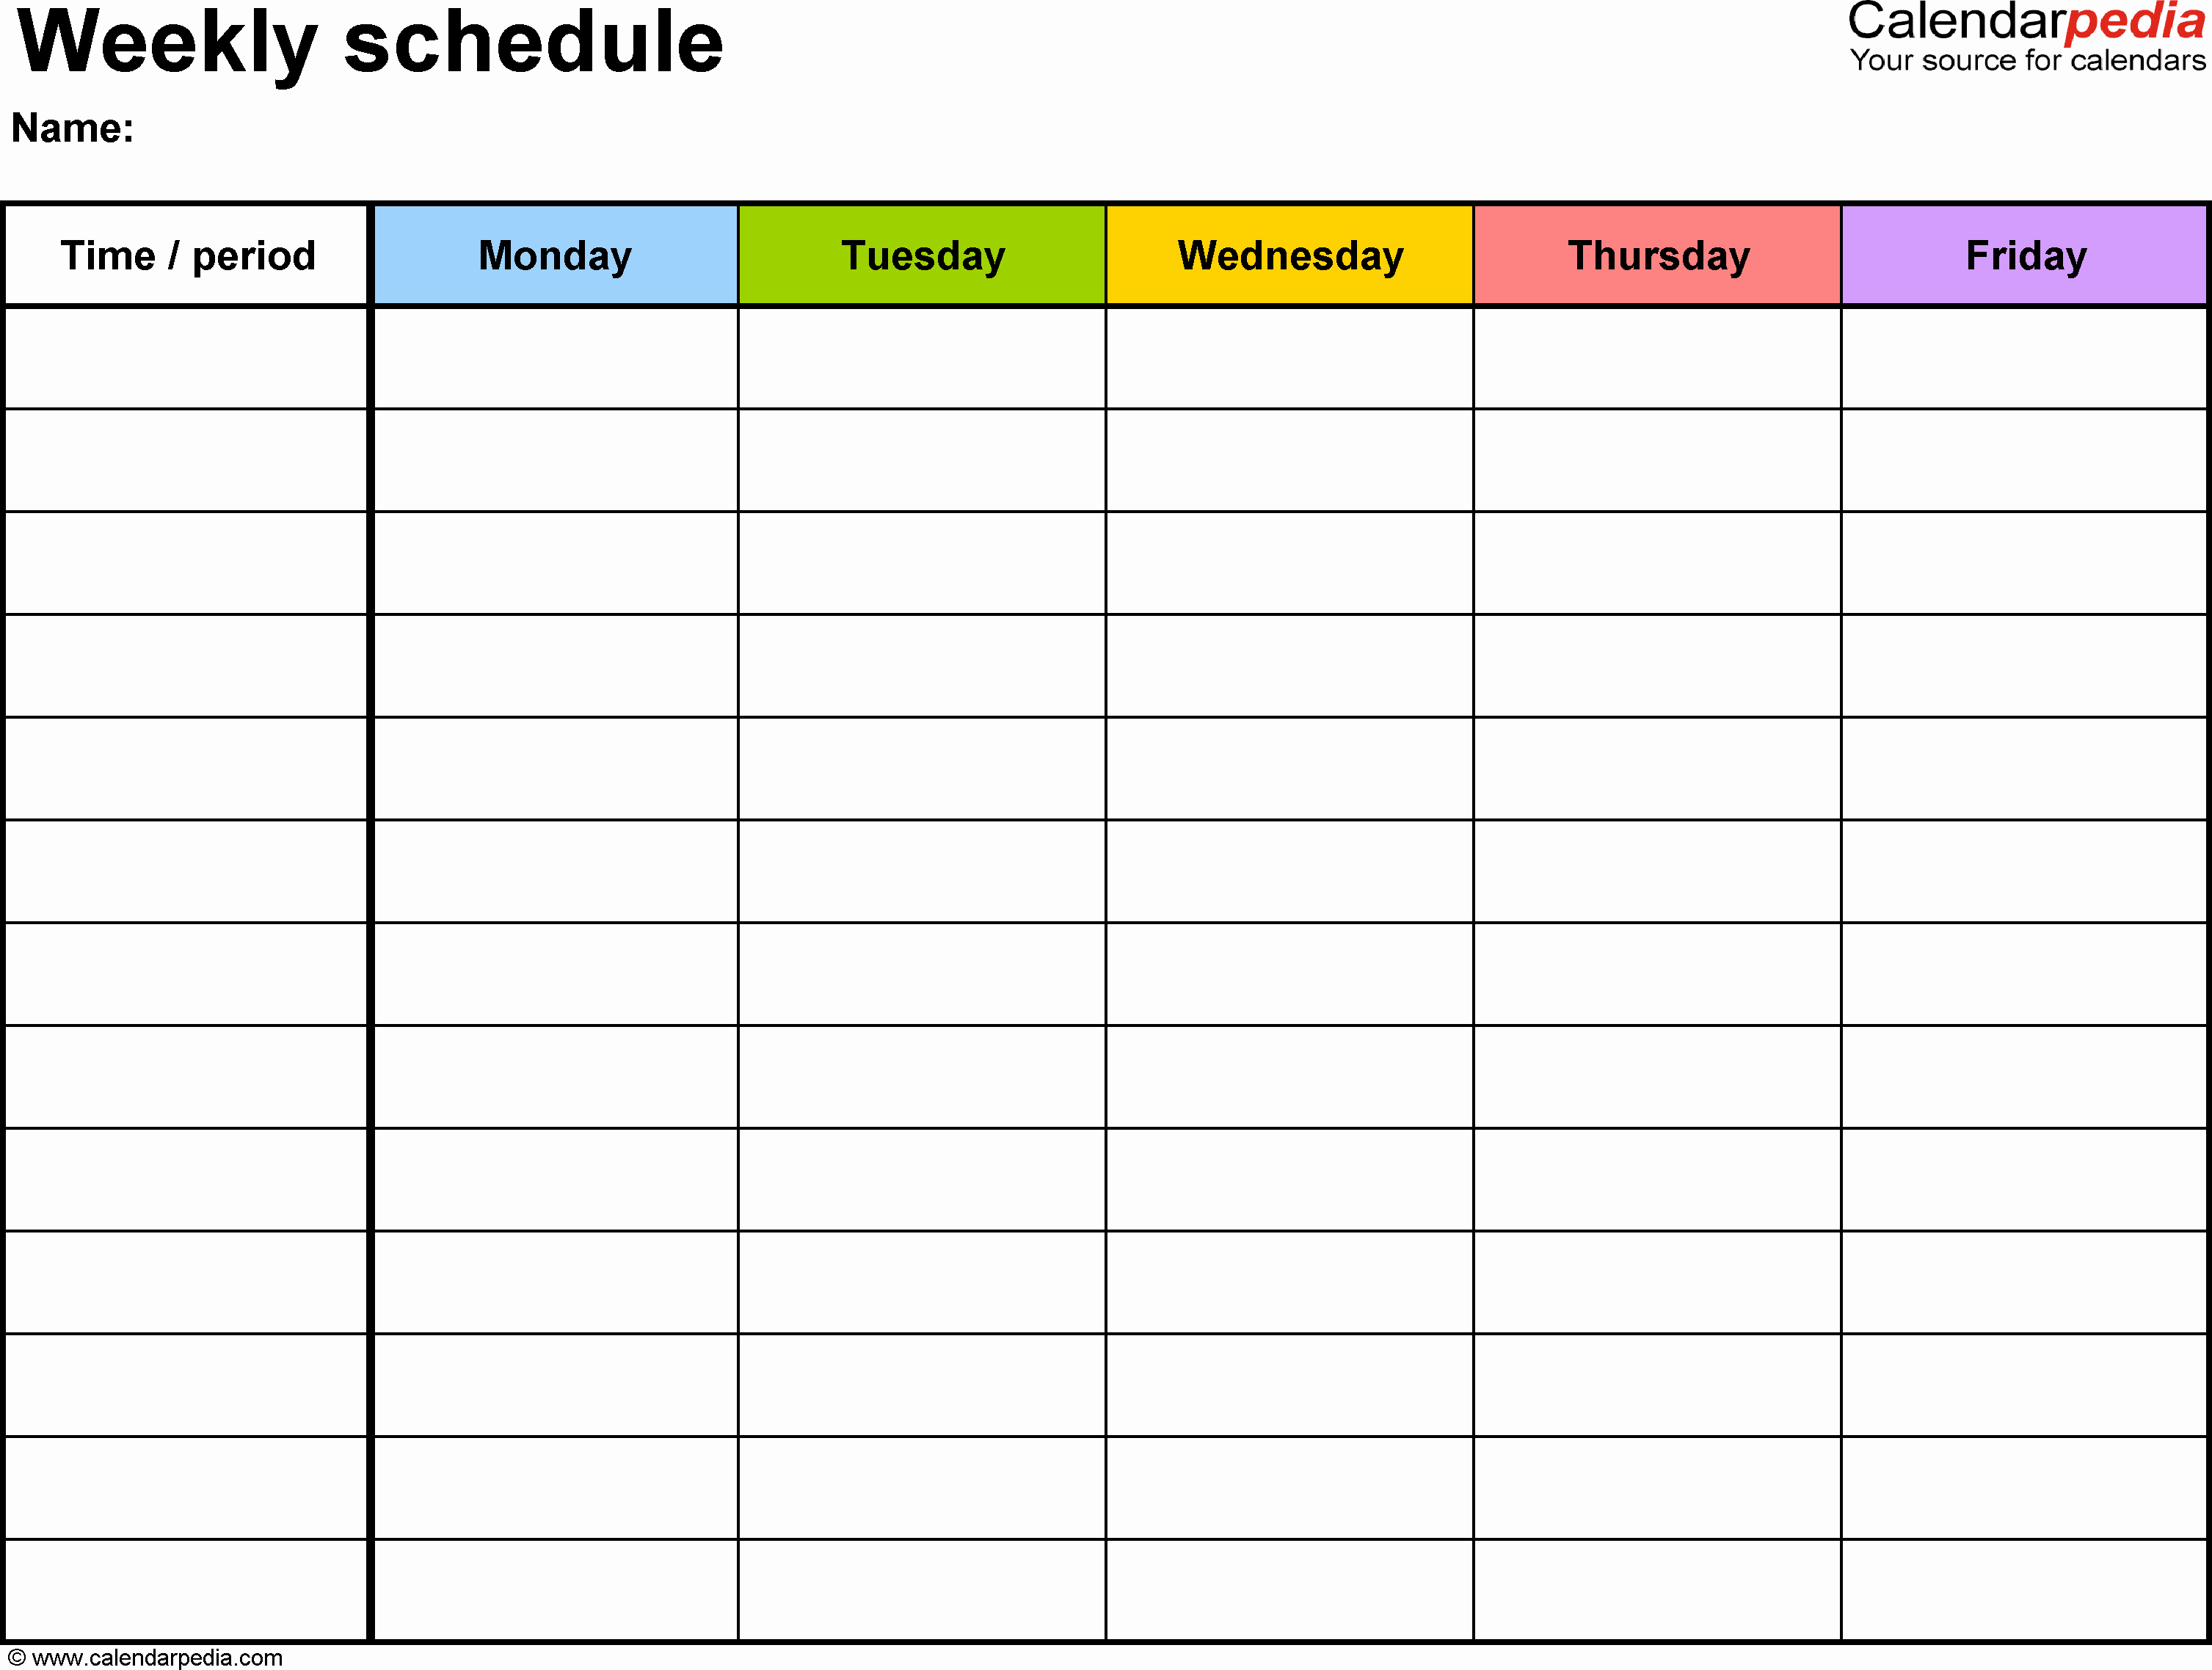 5 Day Calendar Template Word Luxury Free Weekly Schedule Templates for Word 18 Templates